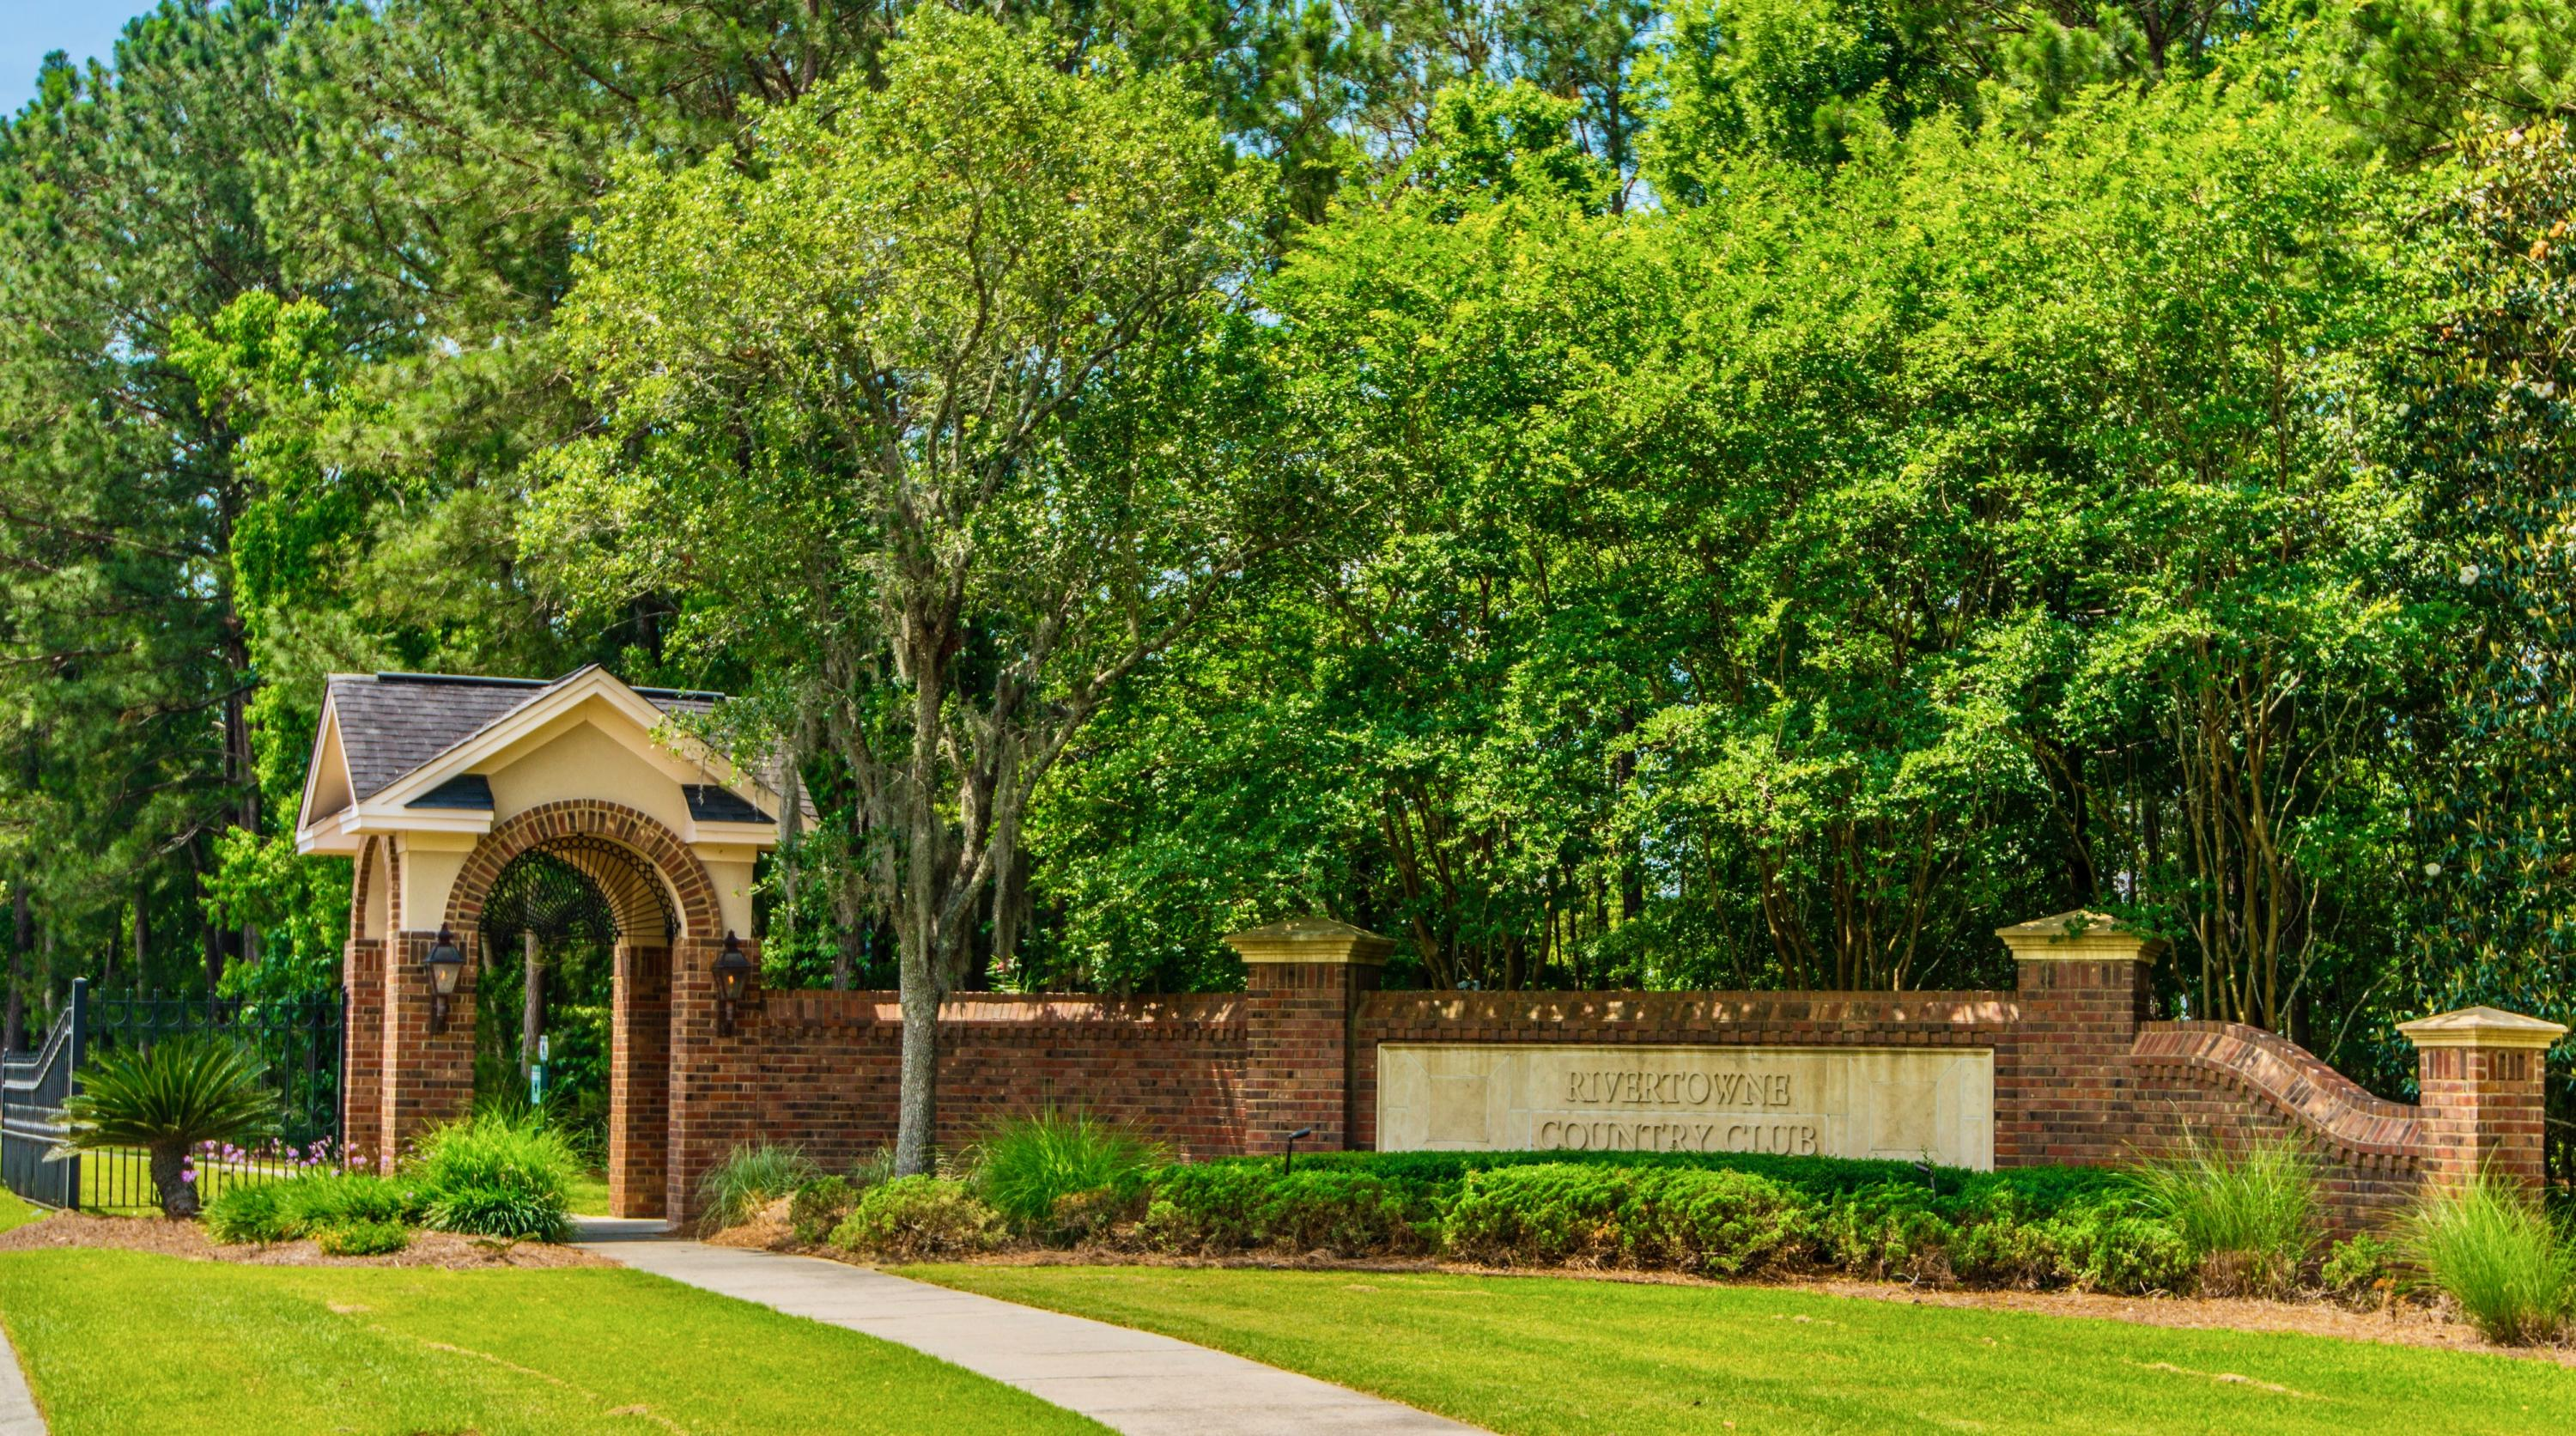 Rivertowne Country Club Homes For Sale - 1544 Rivertowne Country Club, Mount Pleasant, SC - 6